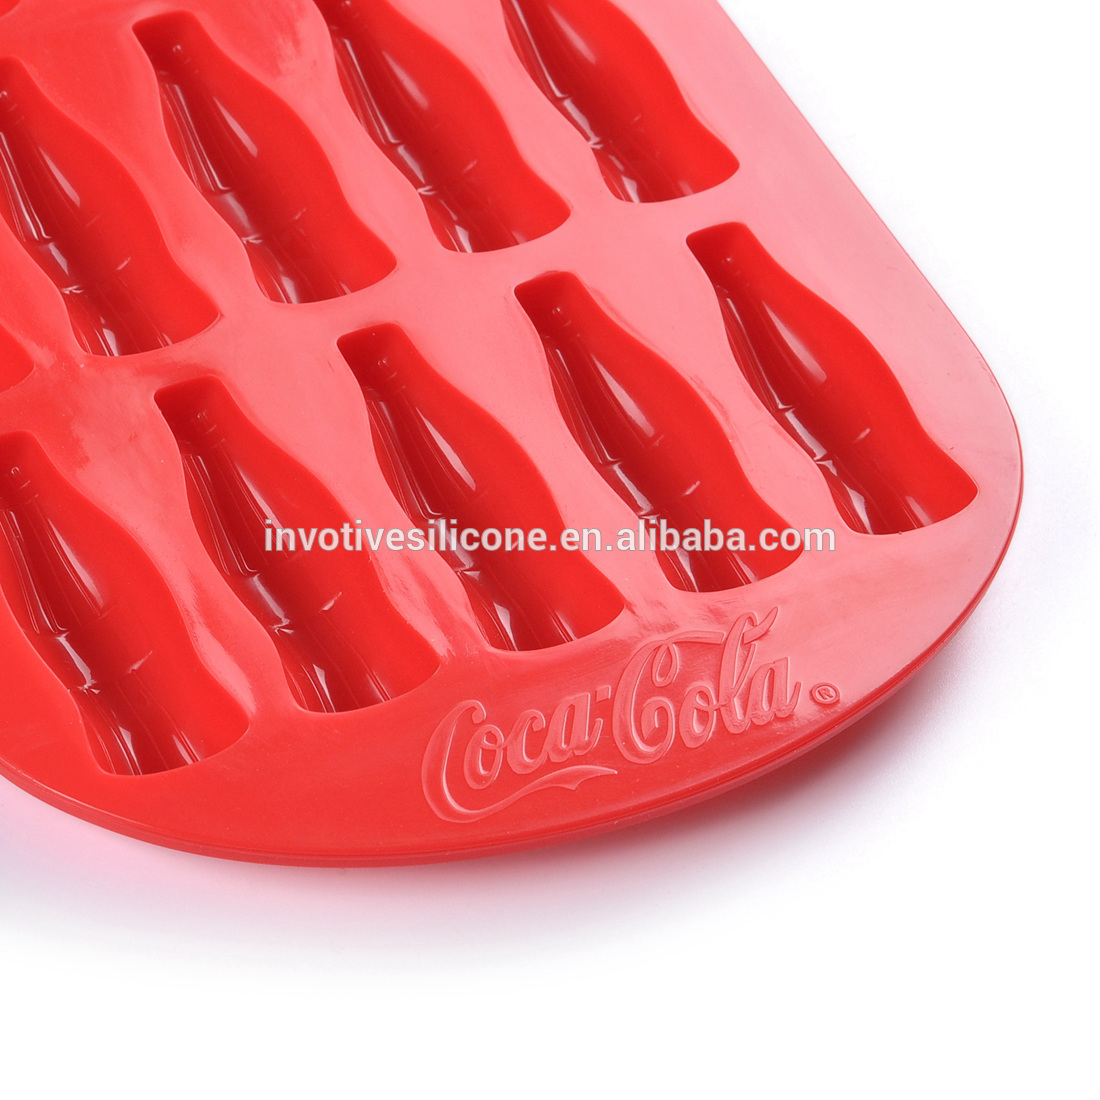 BSCI Factory Food grade bottle shape silicone ice cube trays ice mold for promotional gift